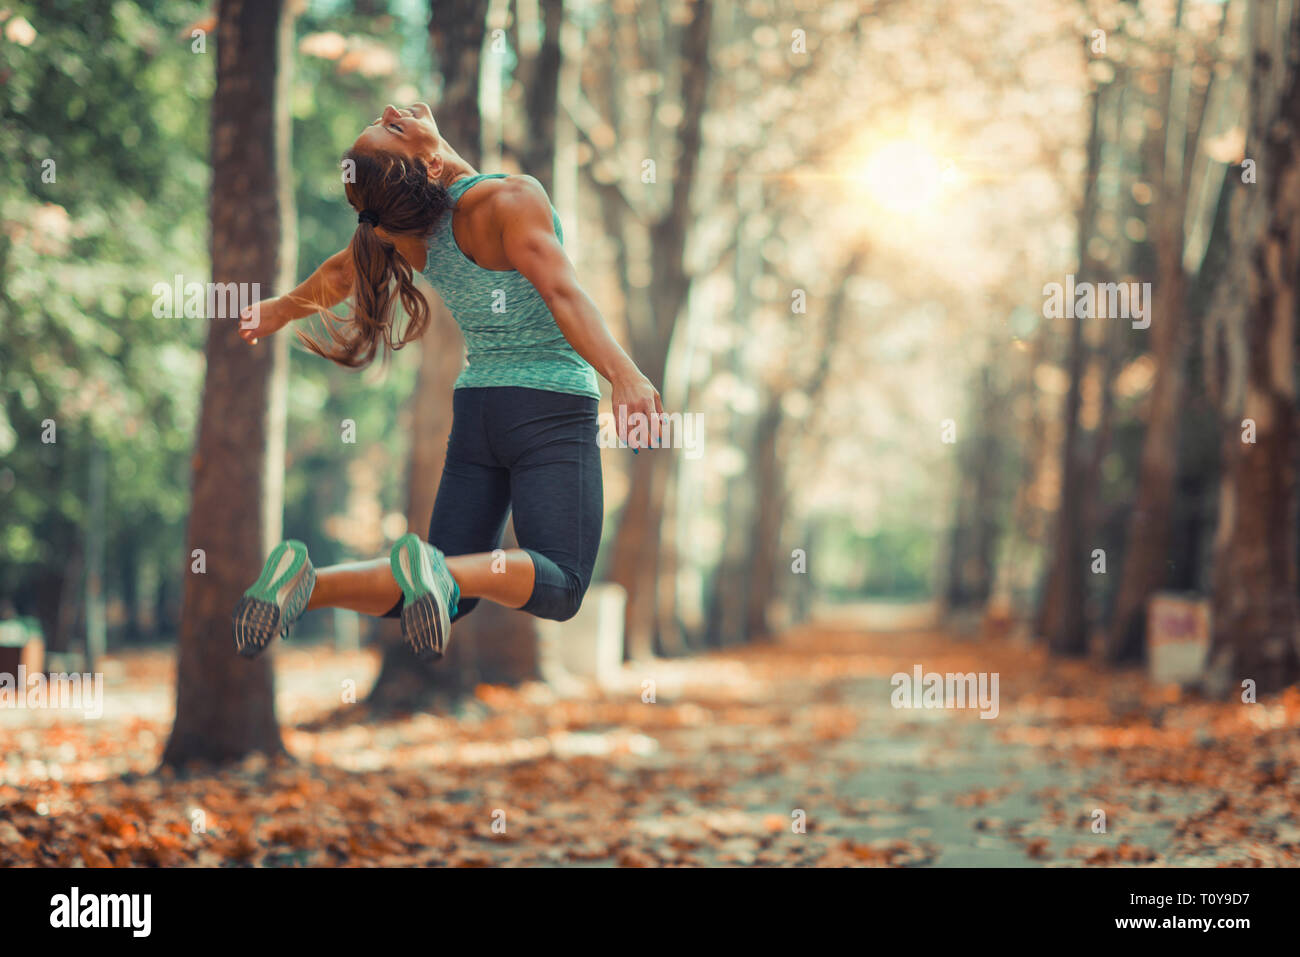 Woman doing star jump outdoors, in public park. - Stock Image